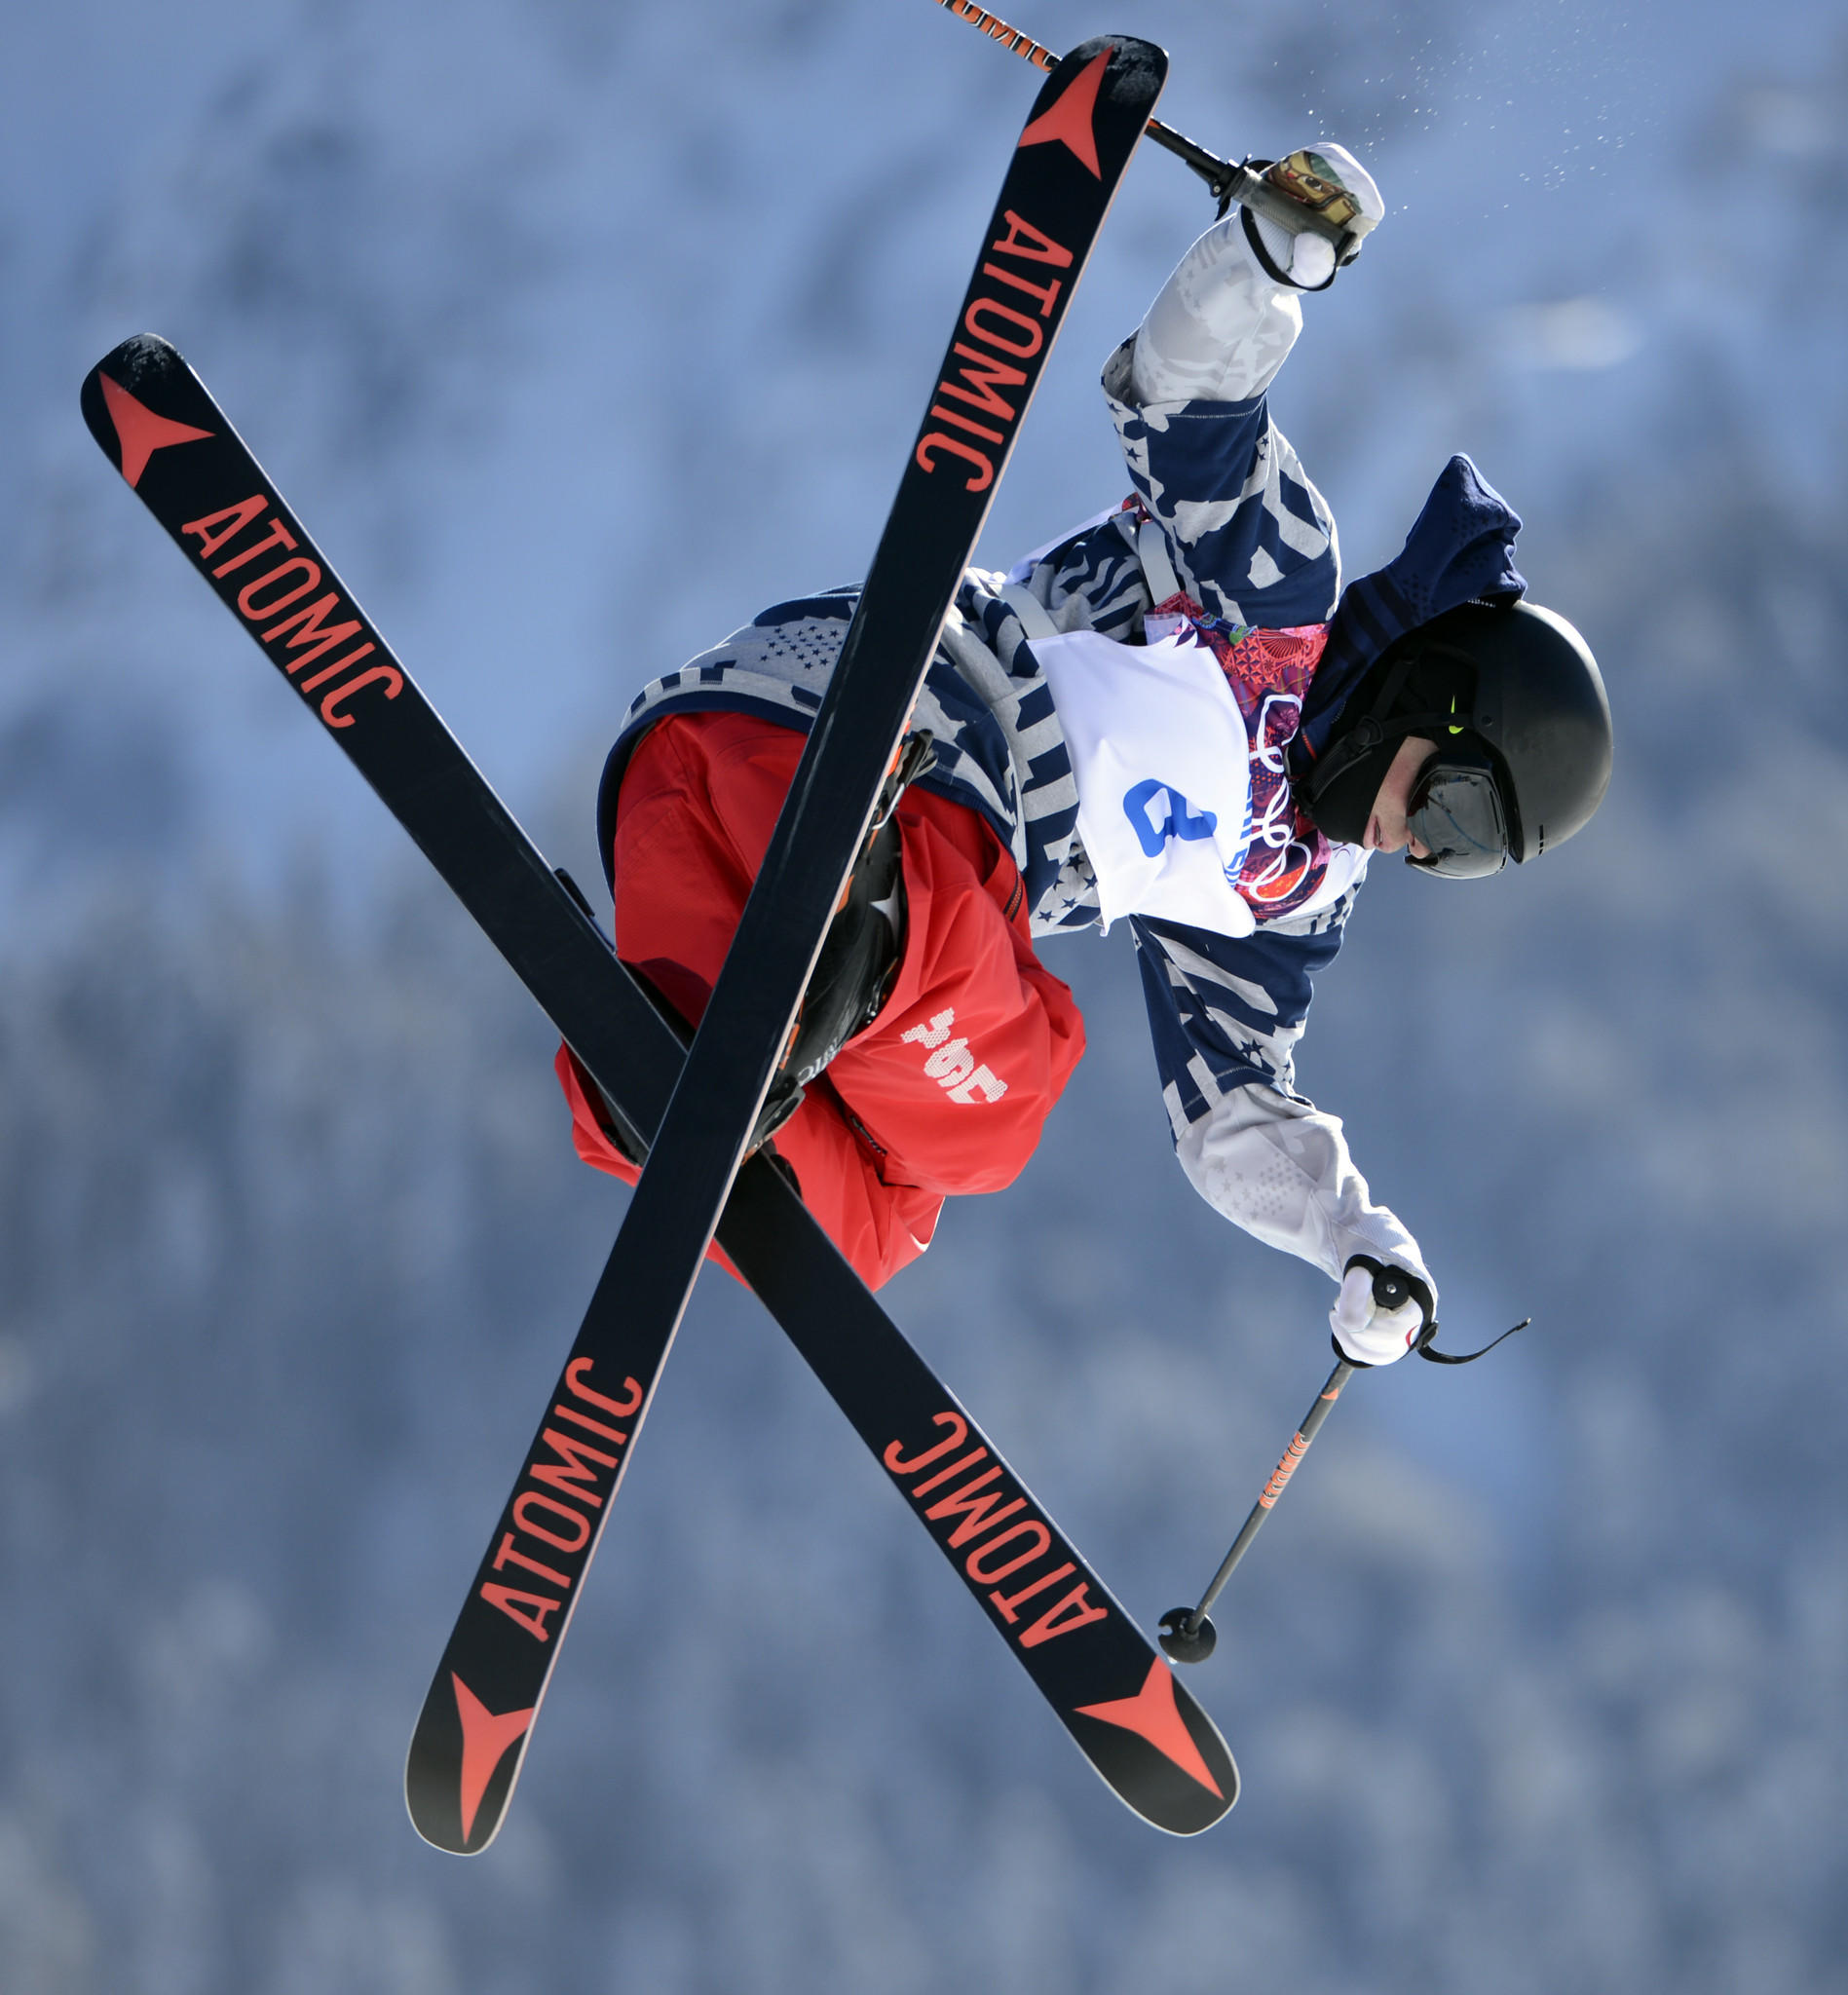 Gus Kenworthy during training runs at Extreme Park. (Jack Gruber/USA TODAY Sports Photo)